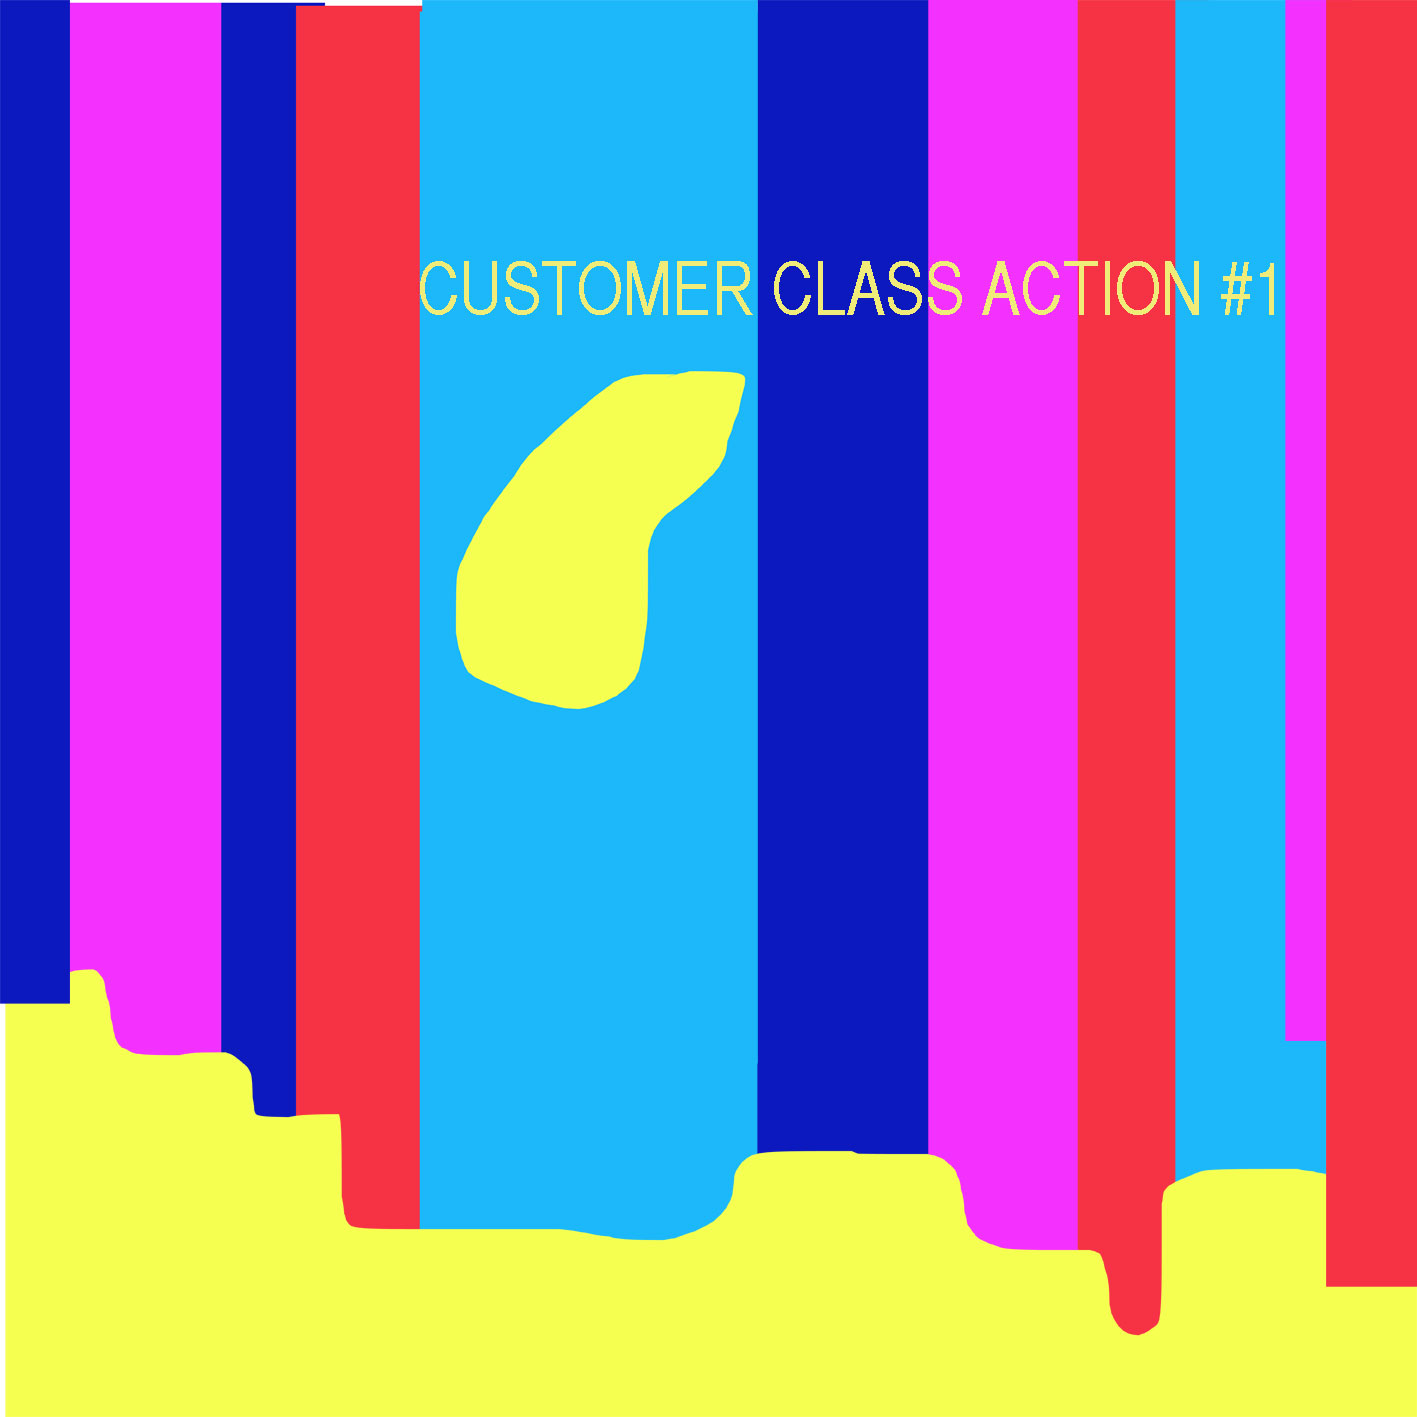 CUSTOMER CLASS ACTION 1